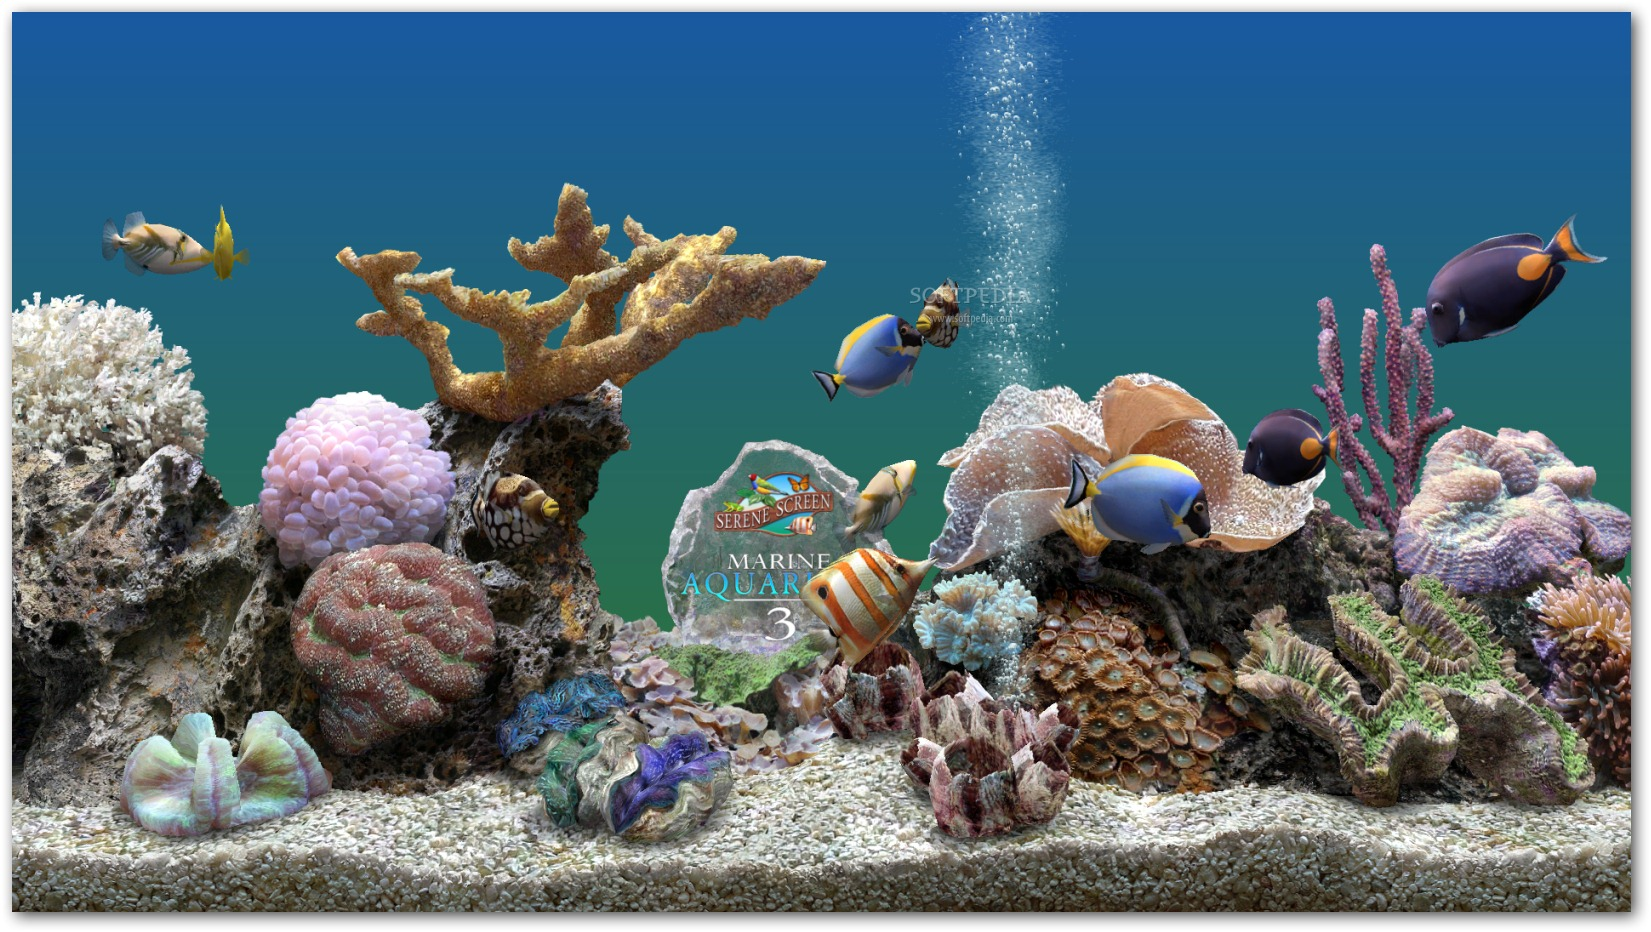 Marine Aquarium With You Are Able To View Interesting Species Right On